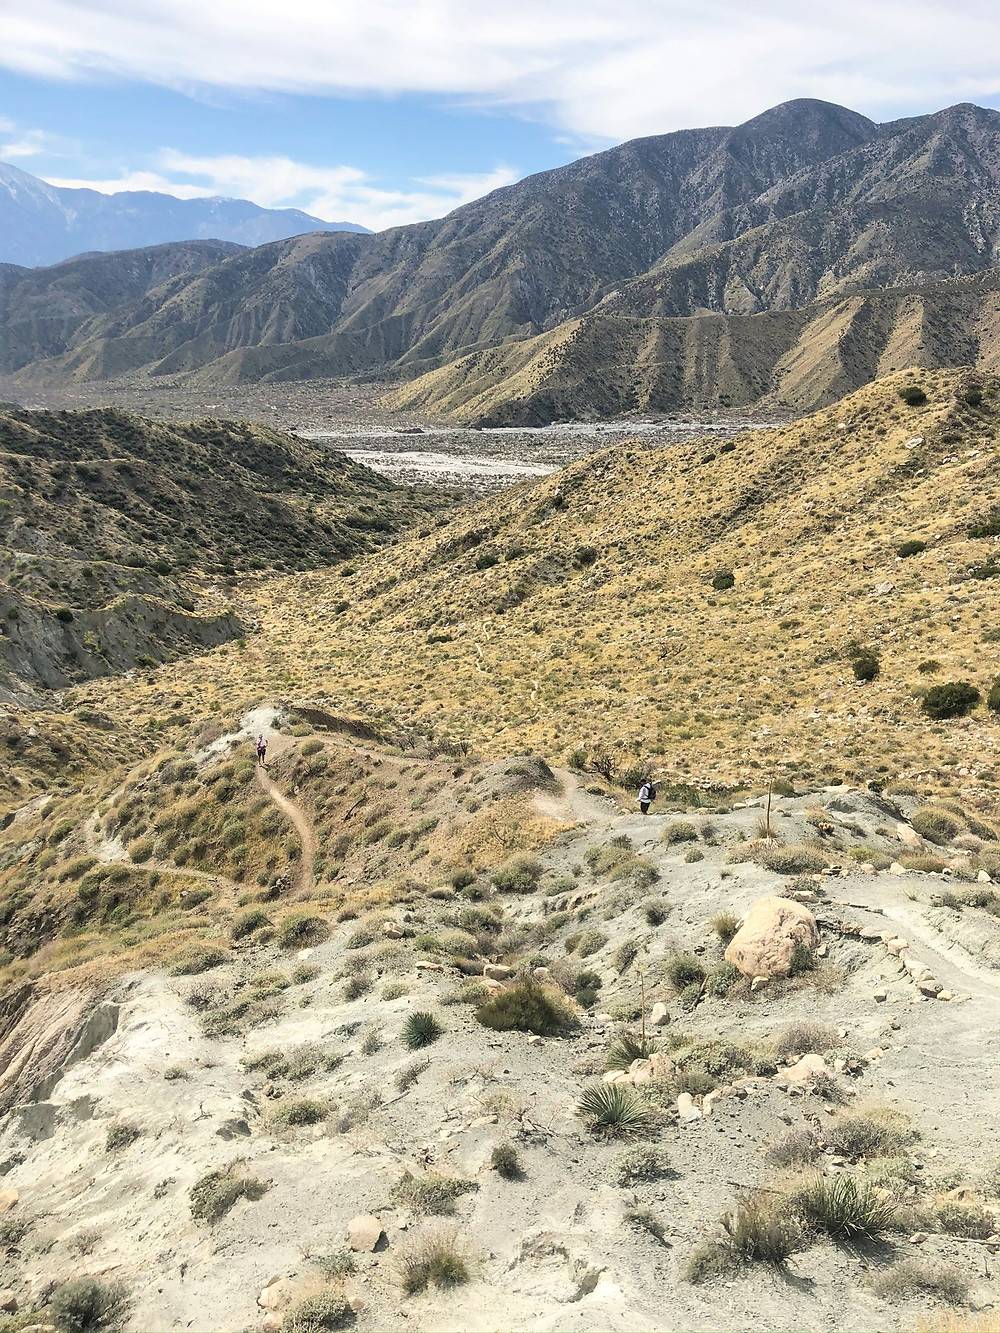 Canyon was of Whitewater River from hills above Whitewater Preserve